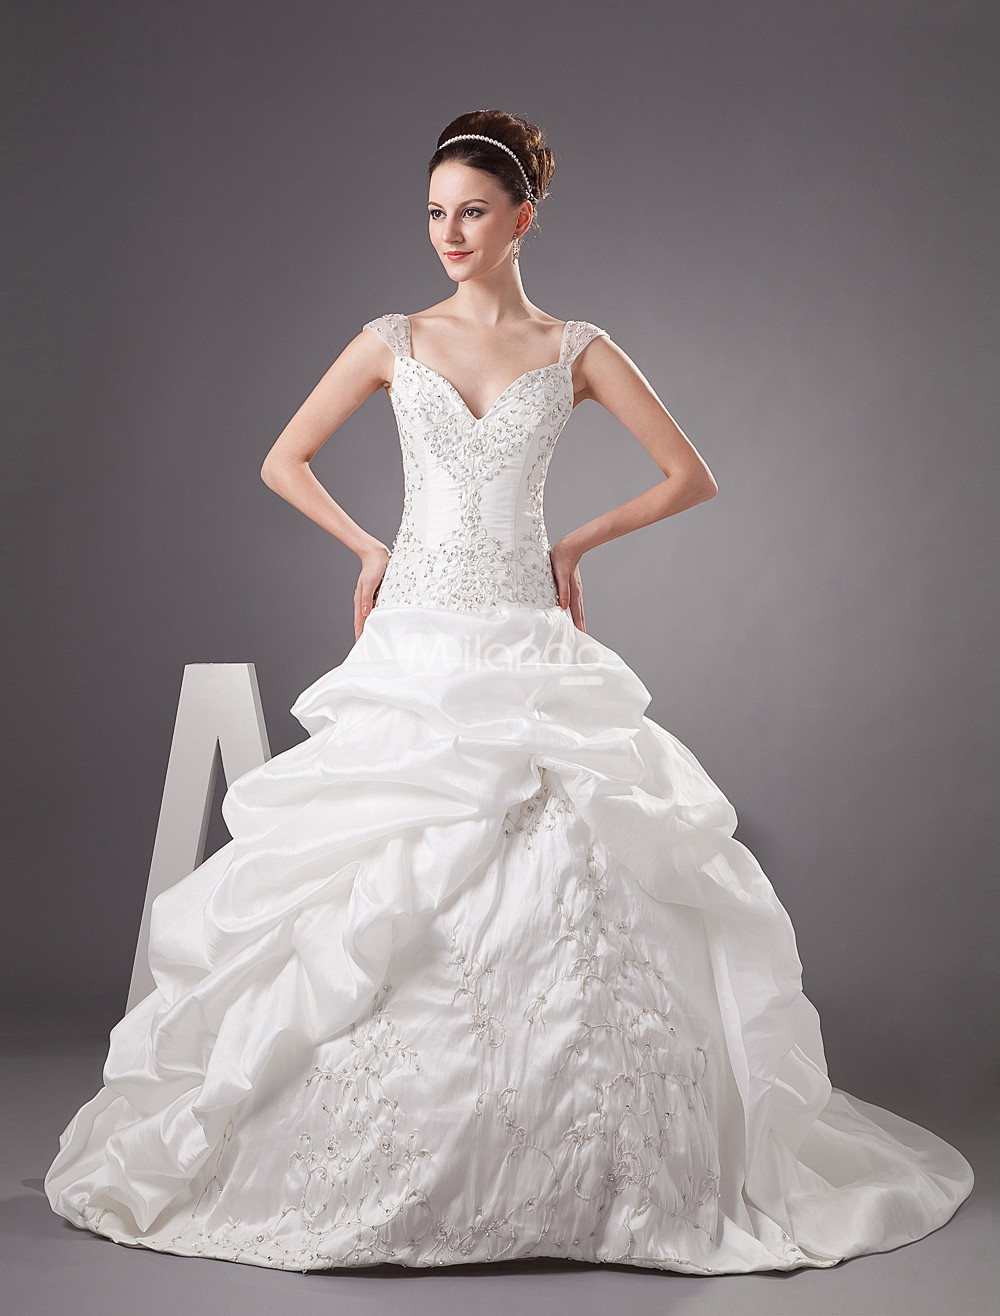 Wedding dresses cinderella style gown and dress gallery for Cinderella wedding dress up